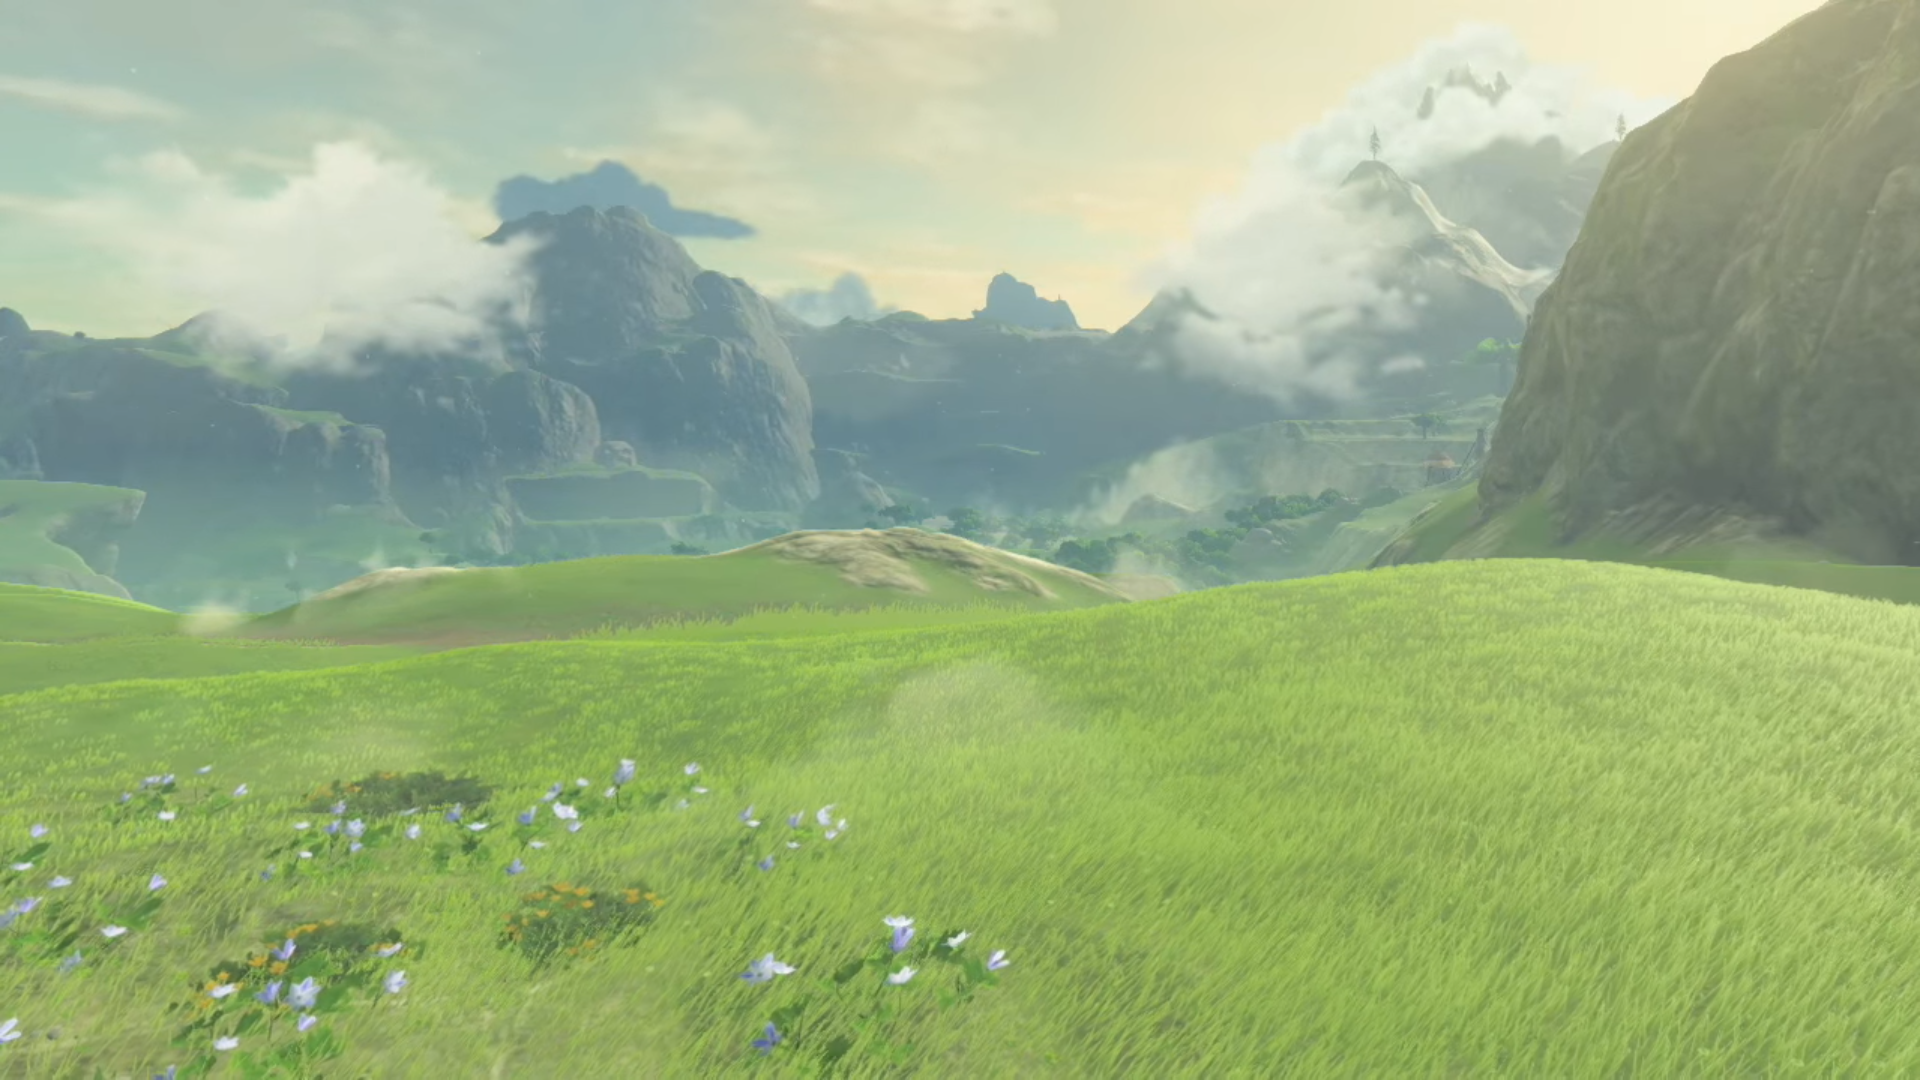 Breath Of The Wild Background Hd Breath Of The Wild Anime